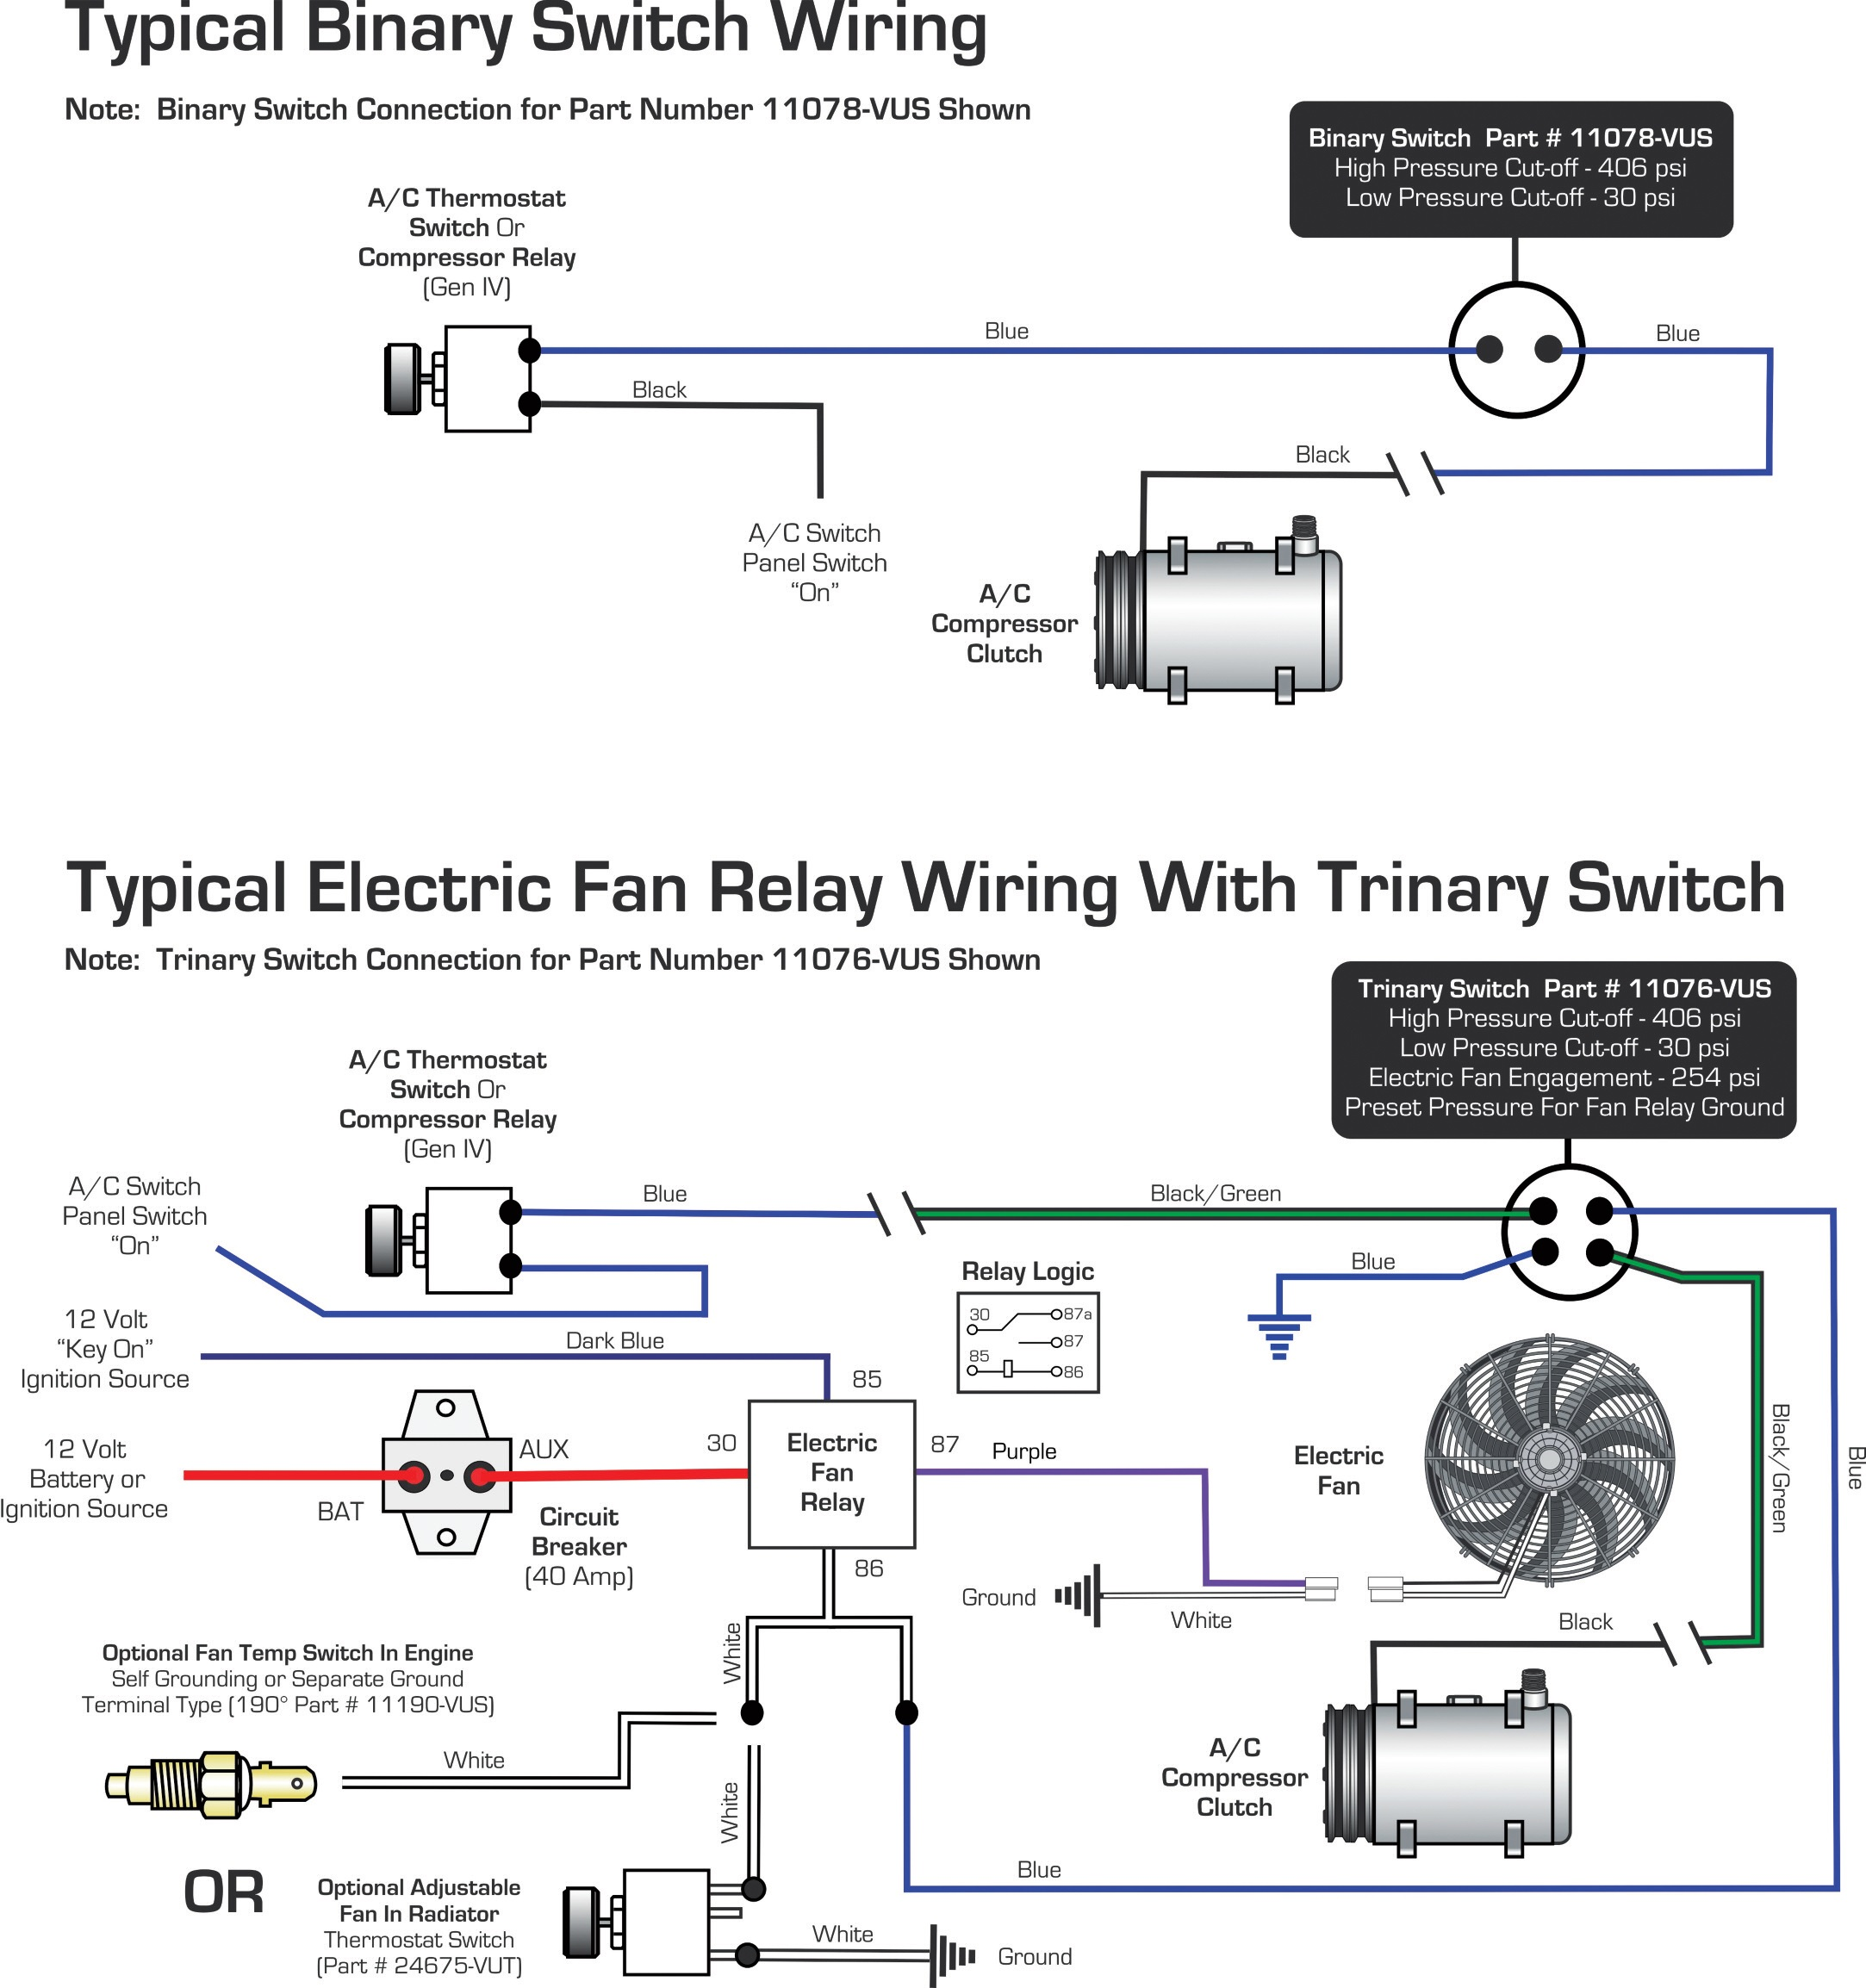 Vintage air blog archive wiring diagrams binary switch trinary 1 asfbconference2016